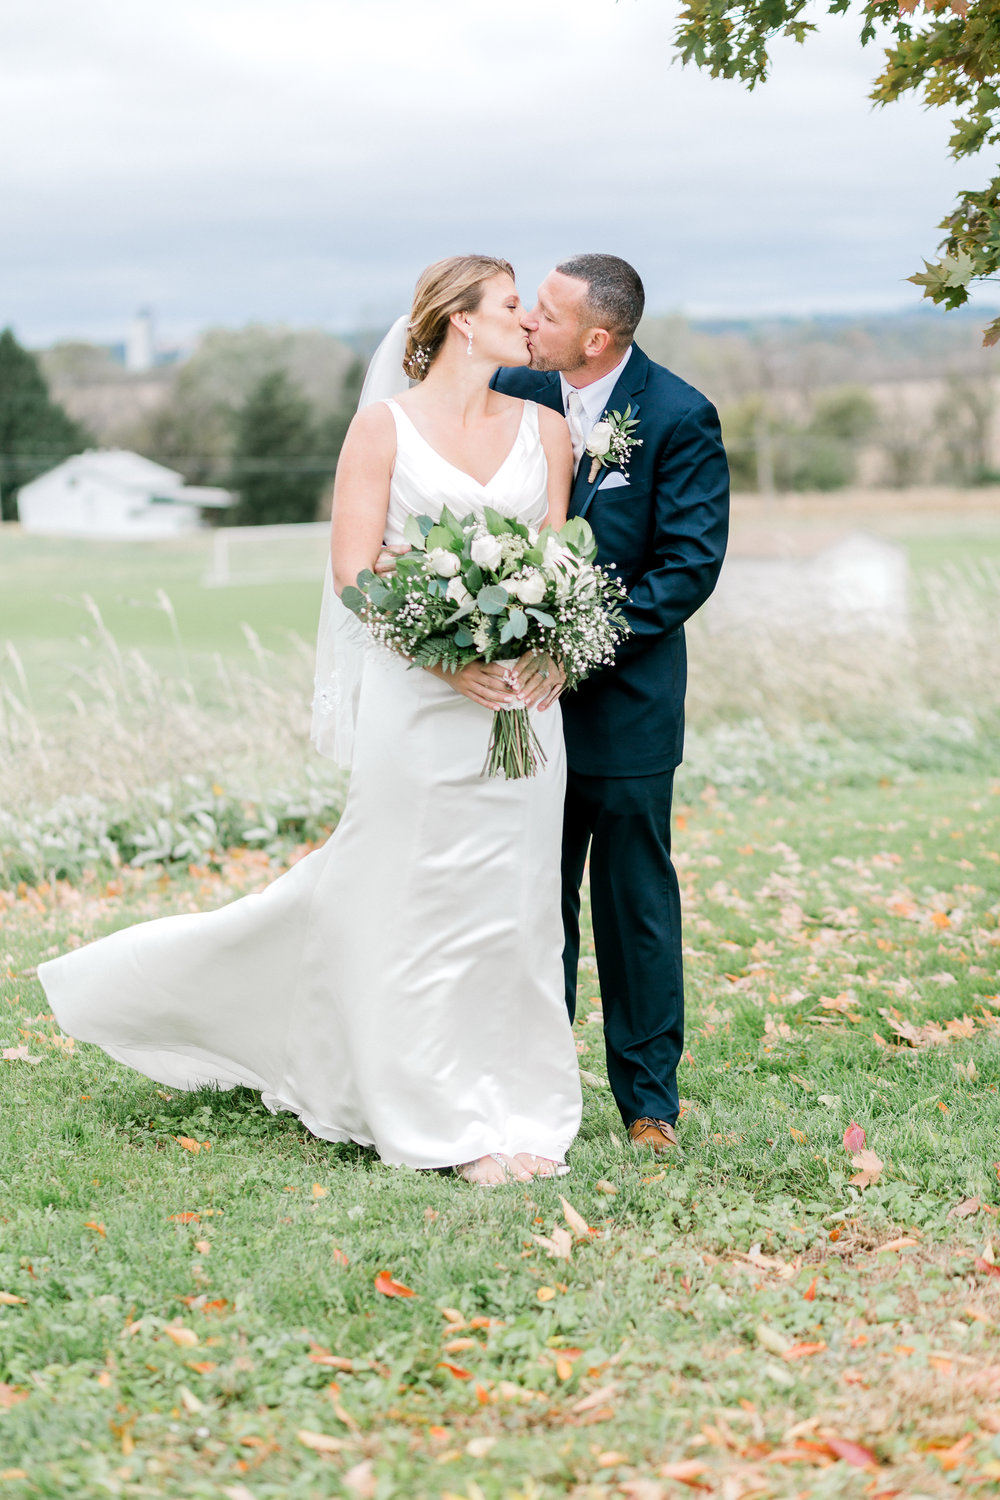 Pennsylvania October Fall Lehigh Valley wedding and lifestyle photographer Lytle Photo Co (91 of 167).jpg